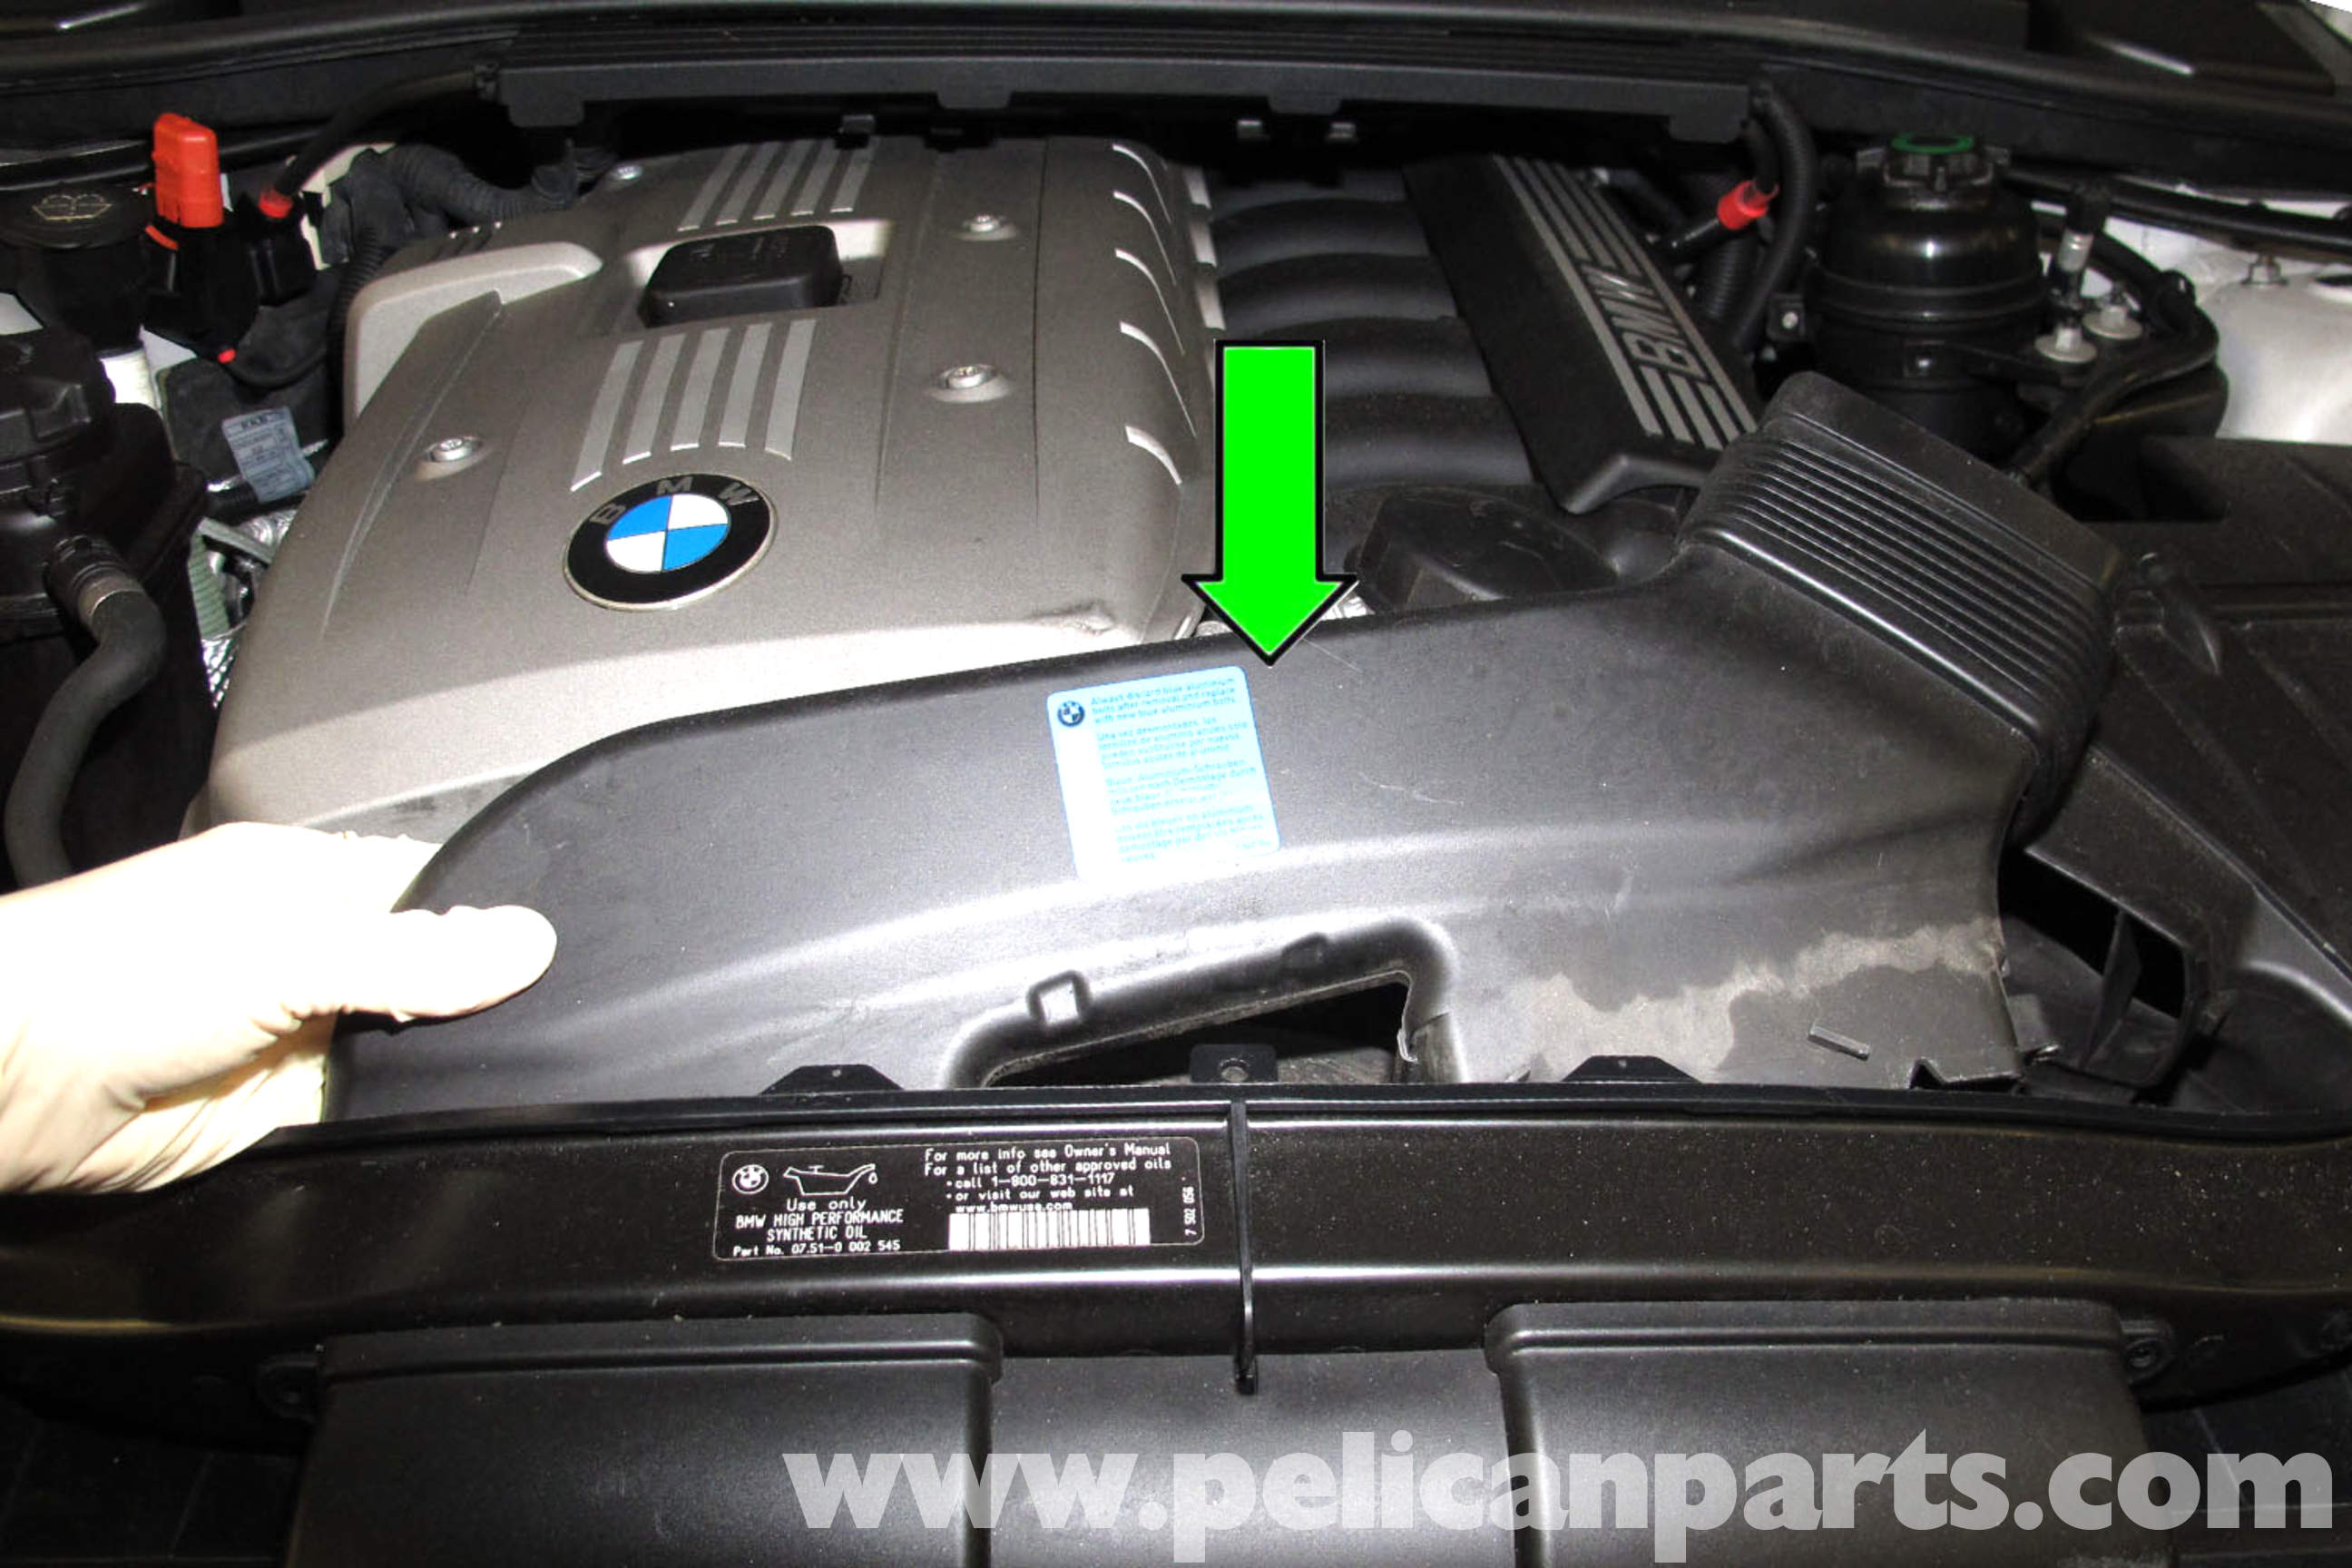 Bmw E90 Throttle Body Replacement E91 E92 E93 Pelican Parts Tps On 60 Series Engine Schematics Large Image Extra